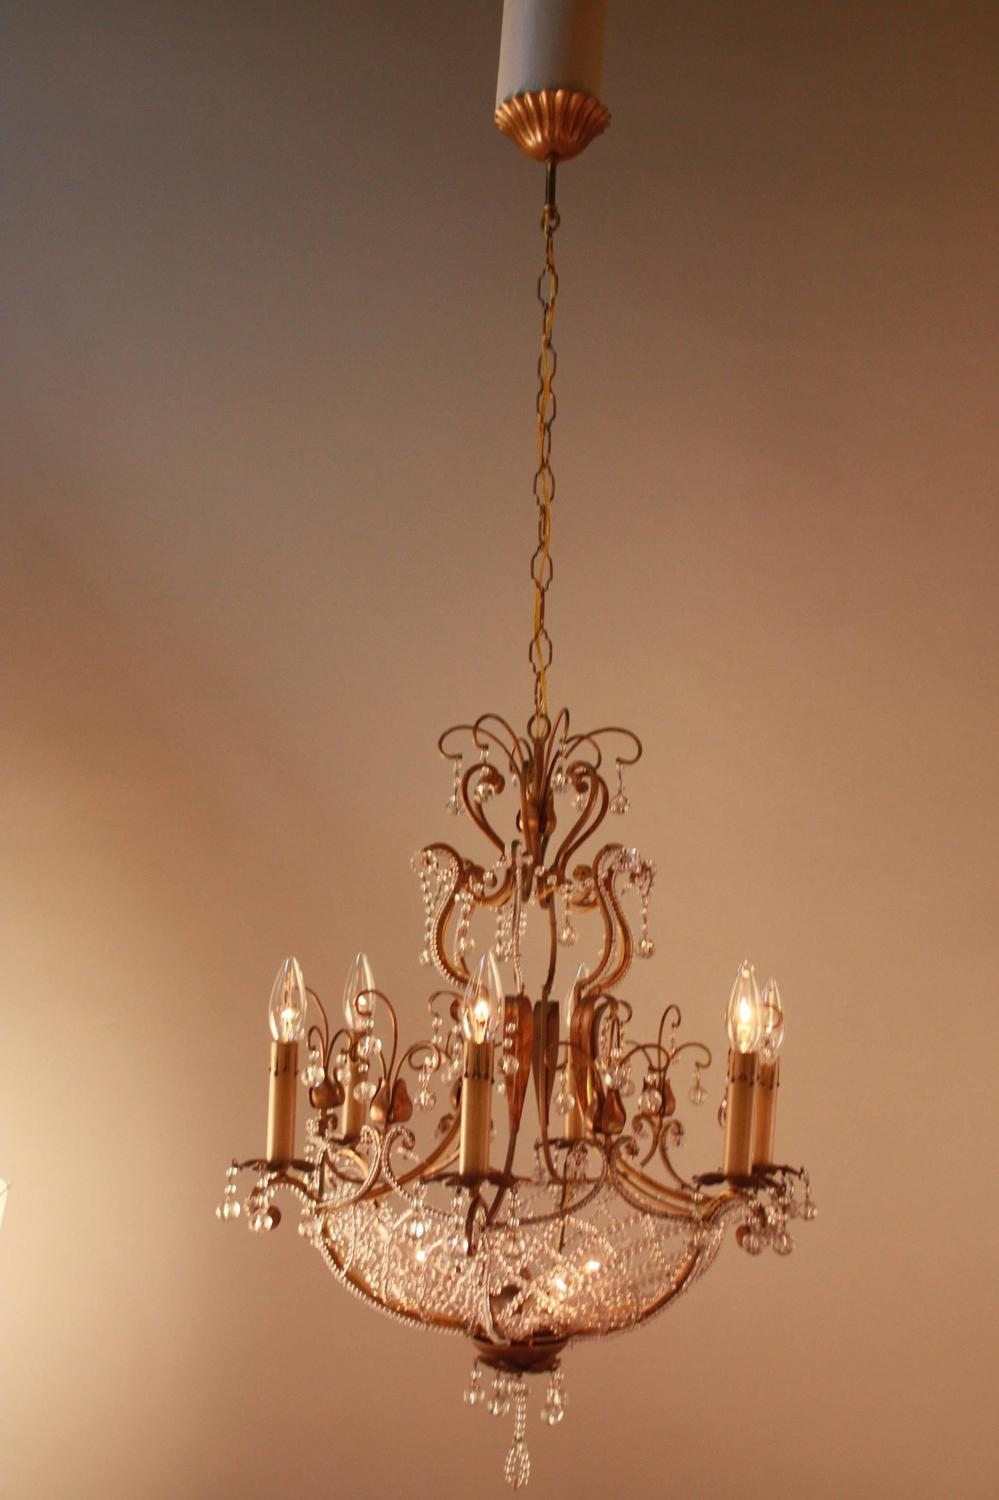 Most beautiful chandeliers 17 world s most beautiful - Most popular chandeliers ...